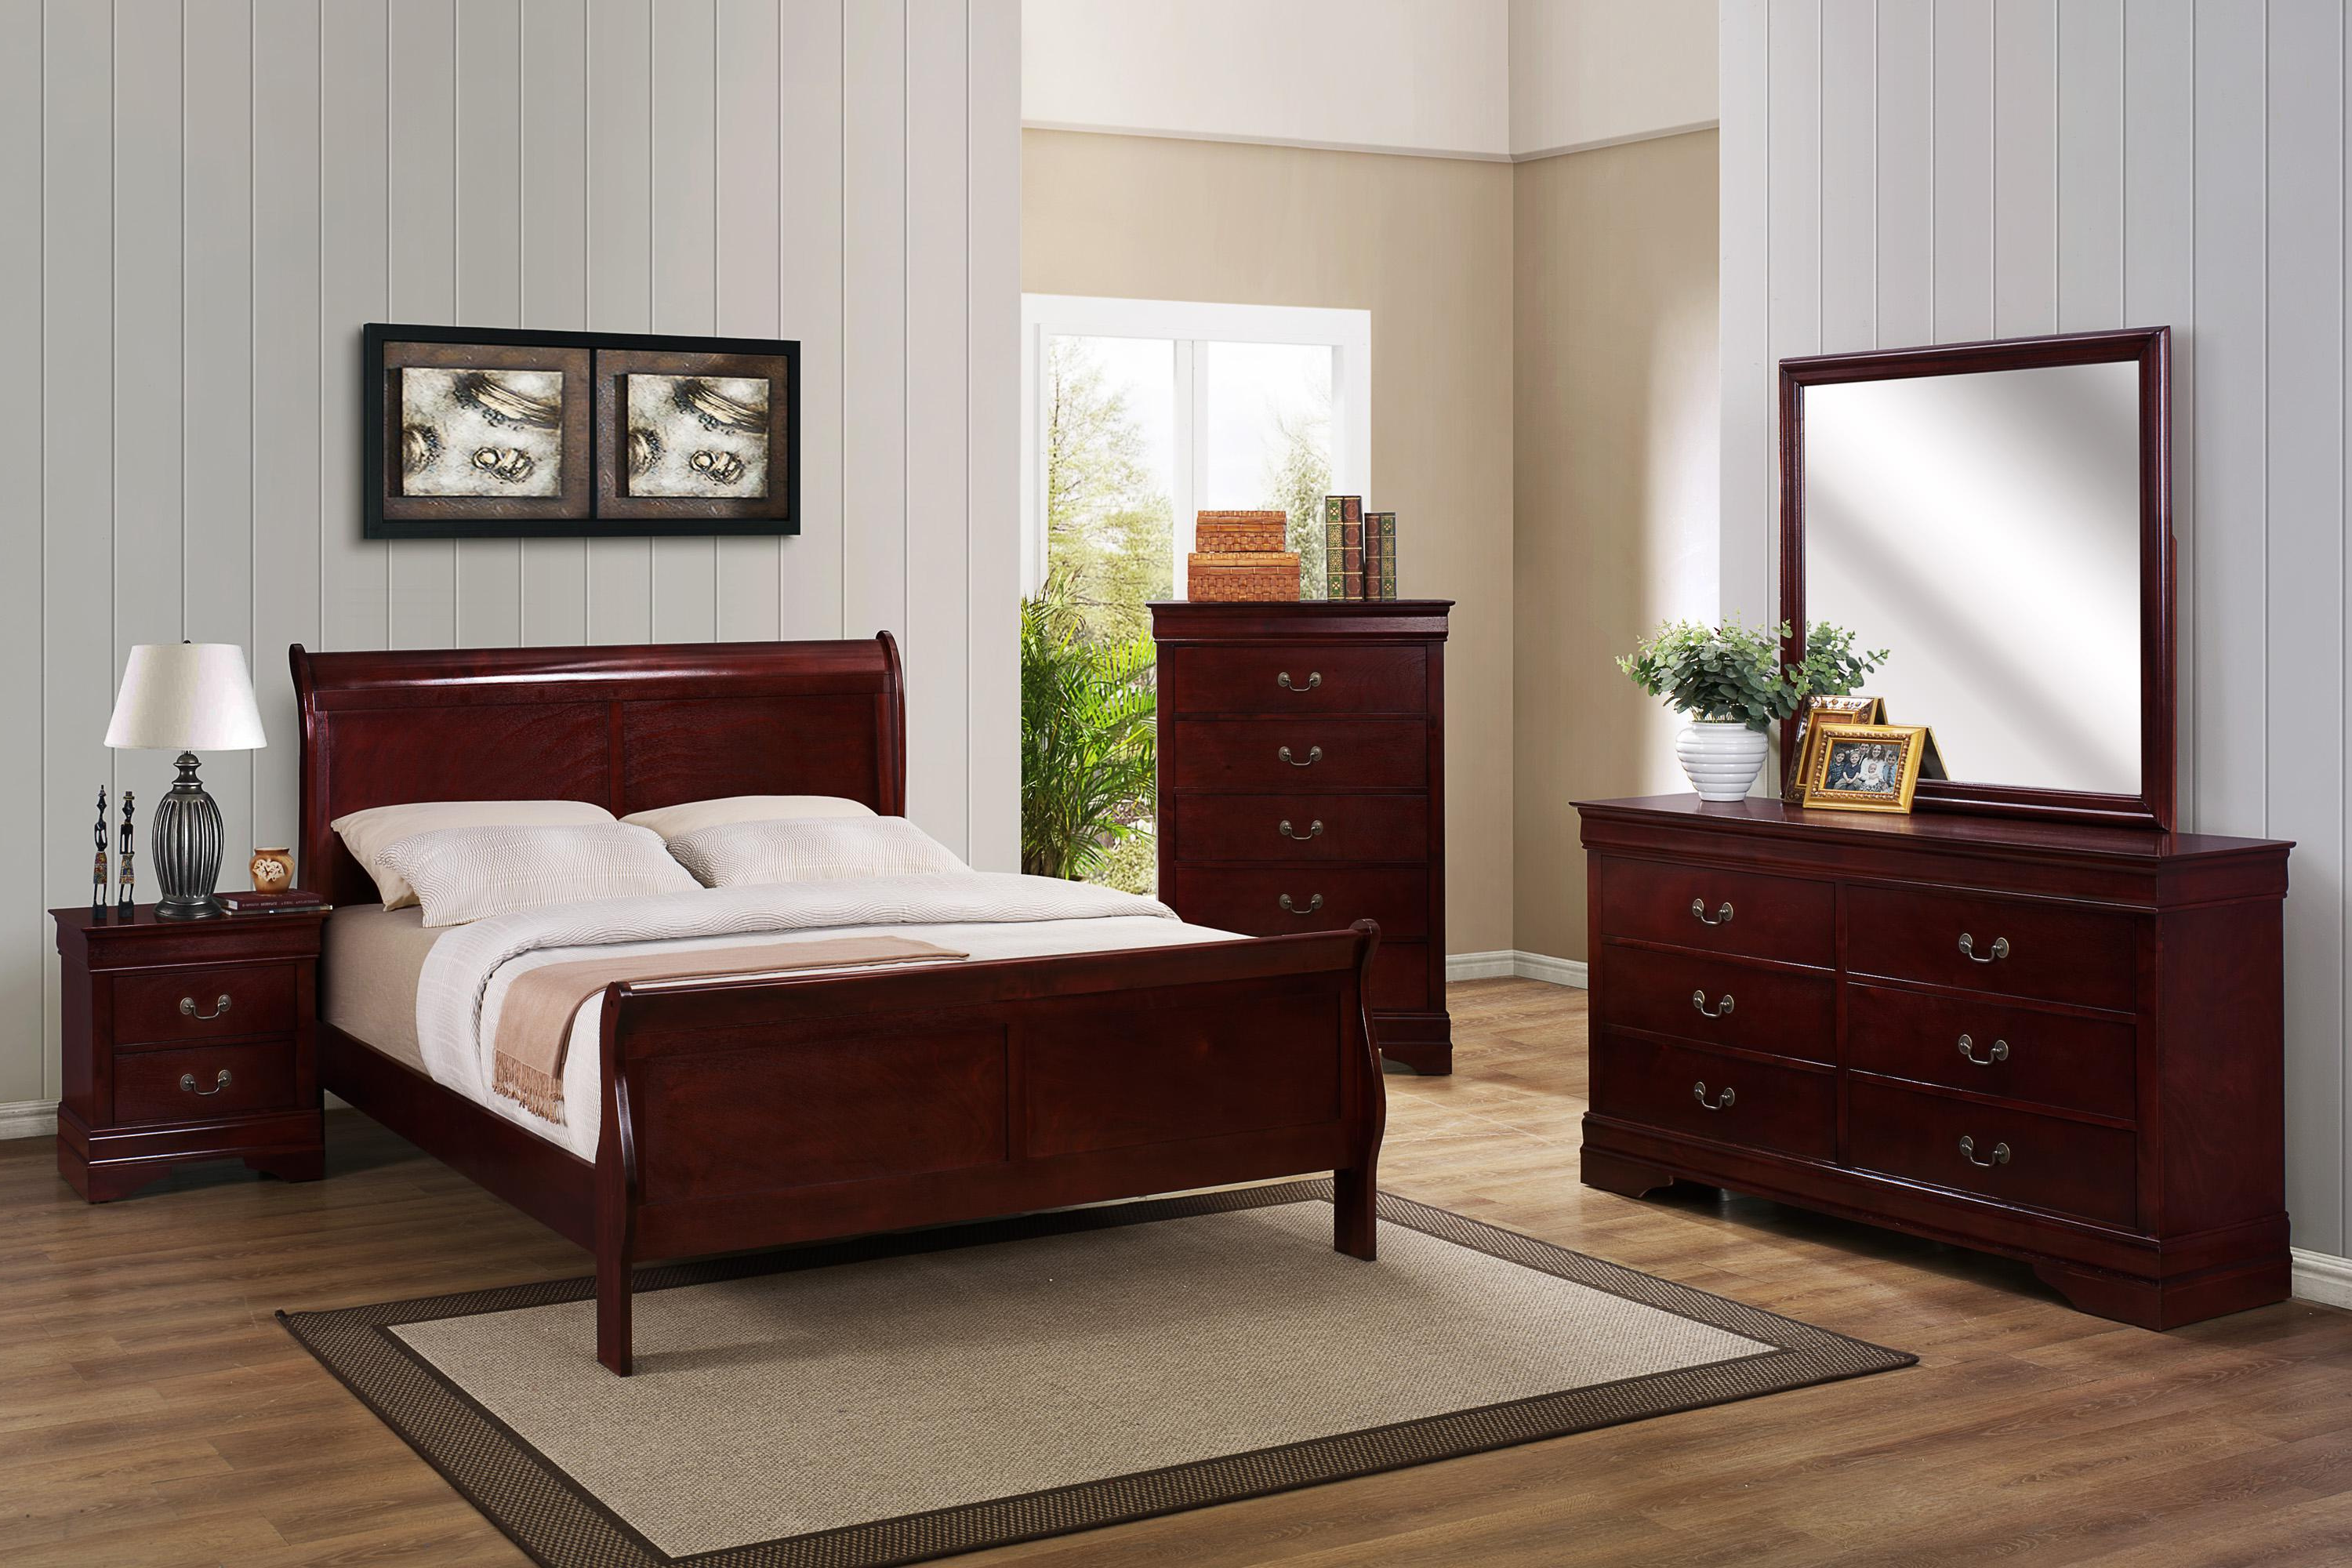 B3800 Louis Philip Bedroom Set